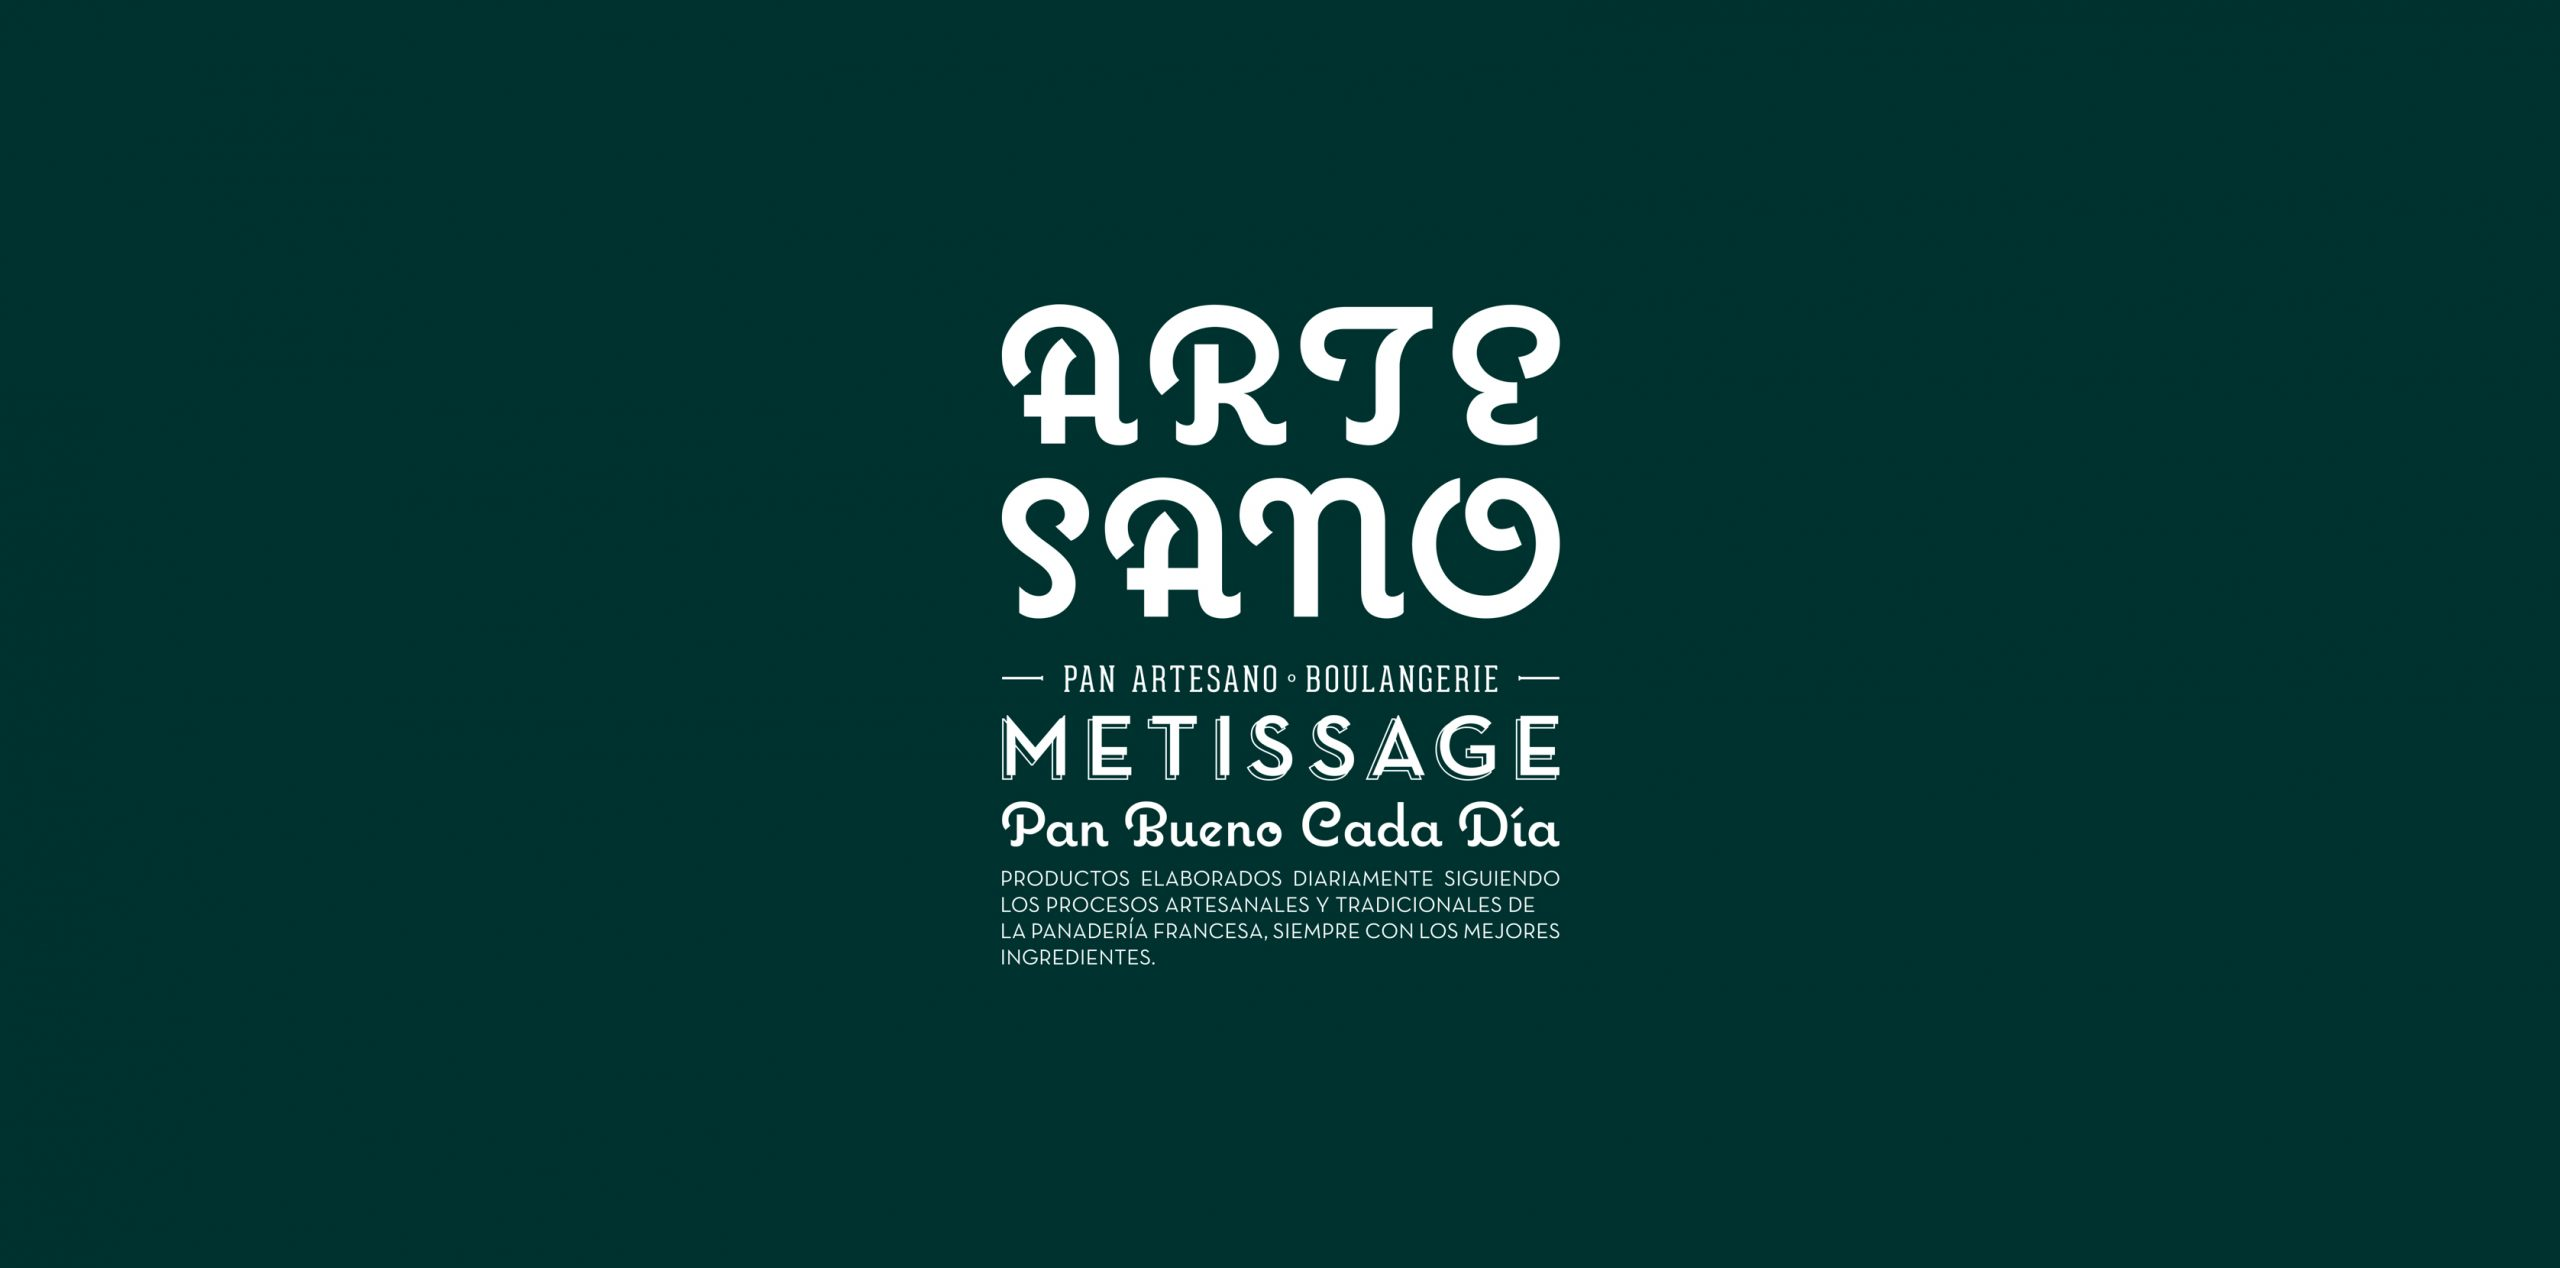 surboreal_metissage_boulangerie_identity0020-scaled-1